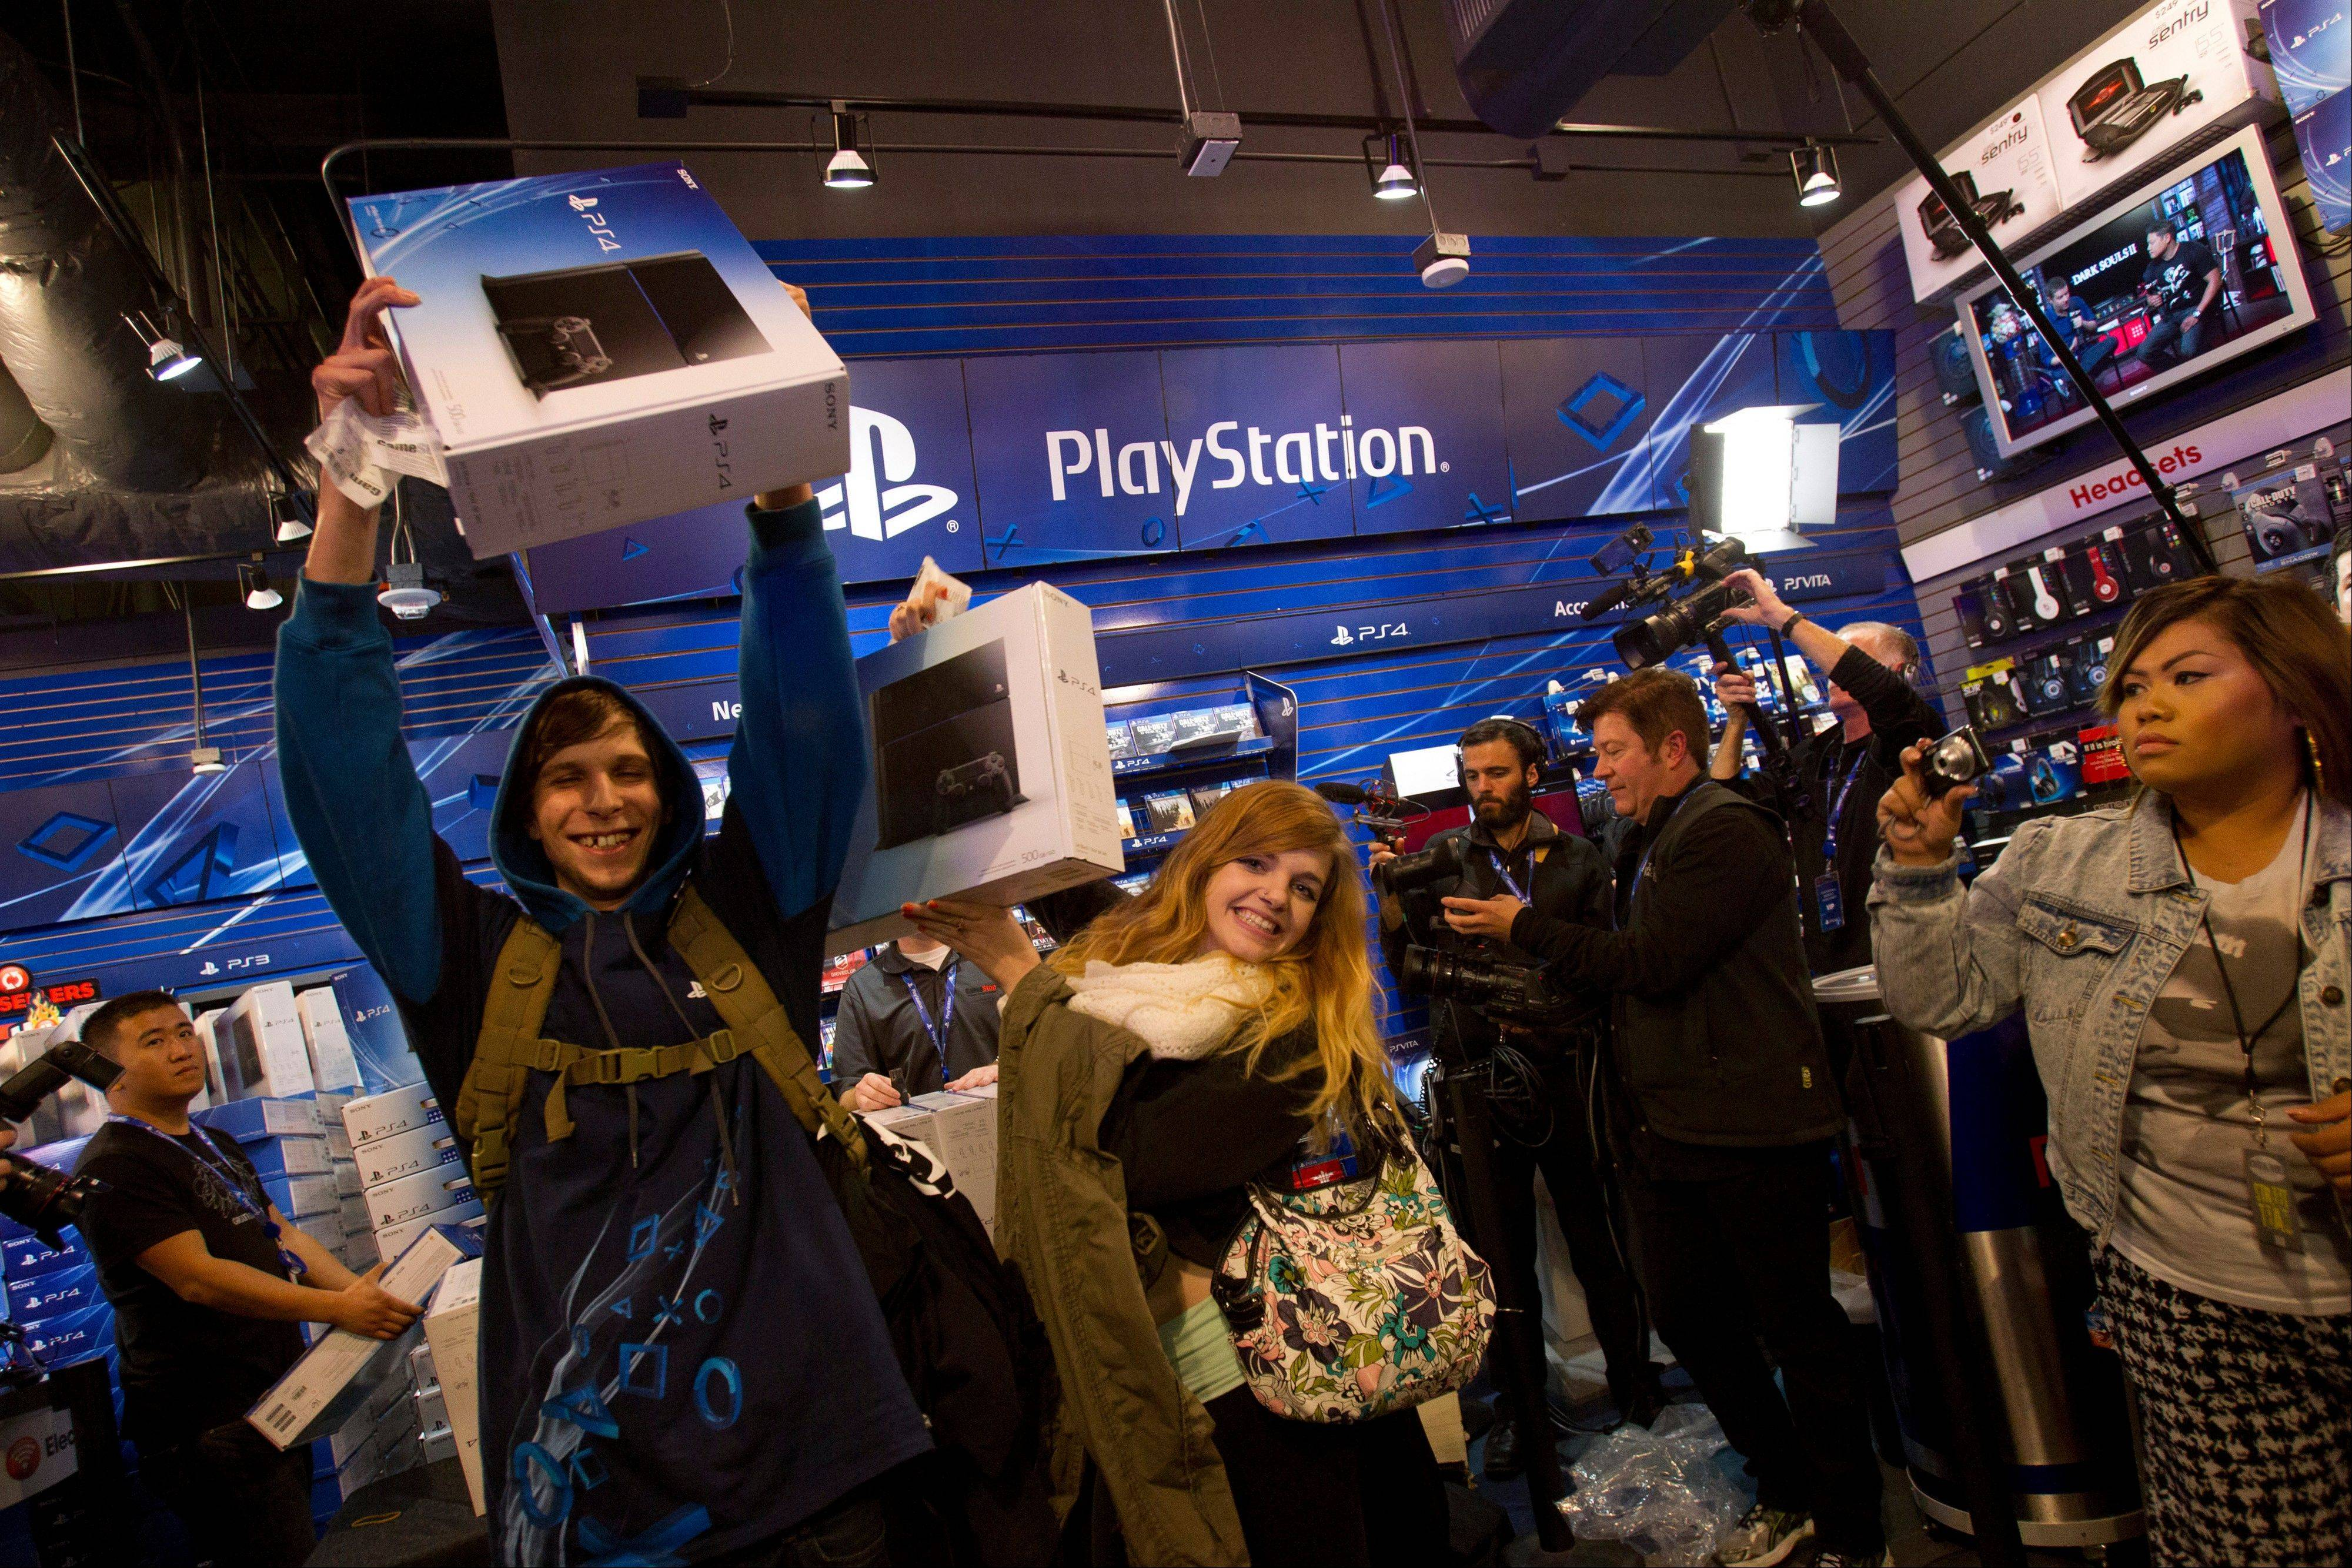 Brenden Hartnet, left, and Sydnee Mencuri, center, celebrate after purchasing the Sony PlayStation 4 console during its midnight launch event in San Francisco on Thursday.